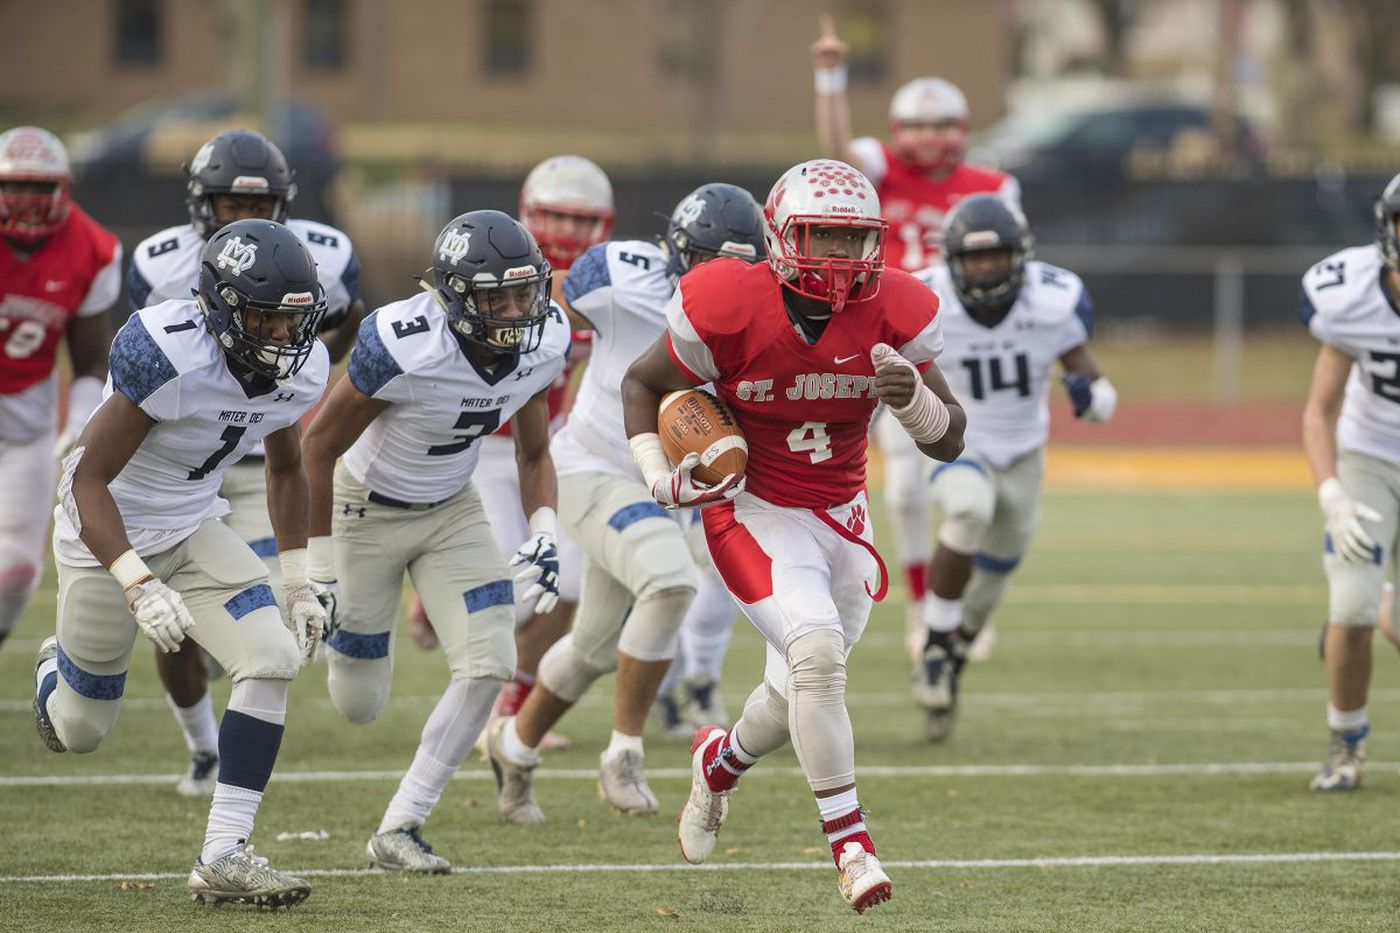 St. Joseph's Qwahsin Townsel signs with Villanova; will switch from running back to linebacker